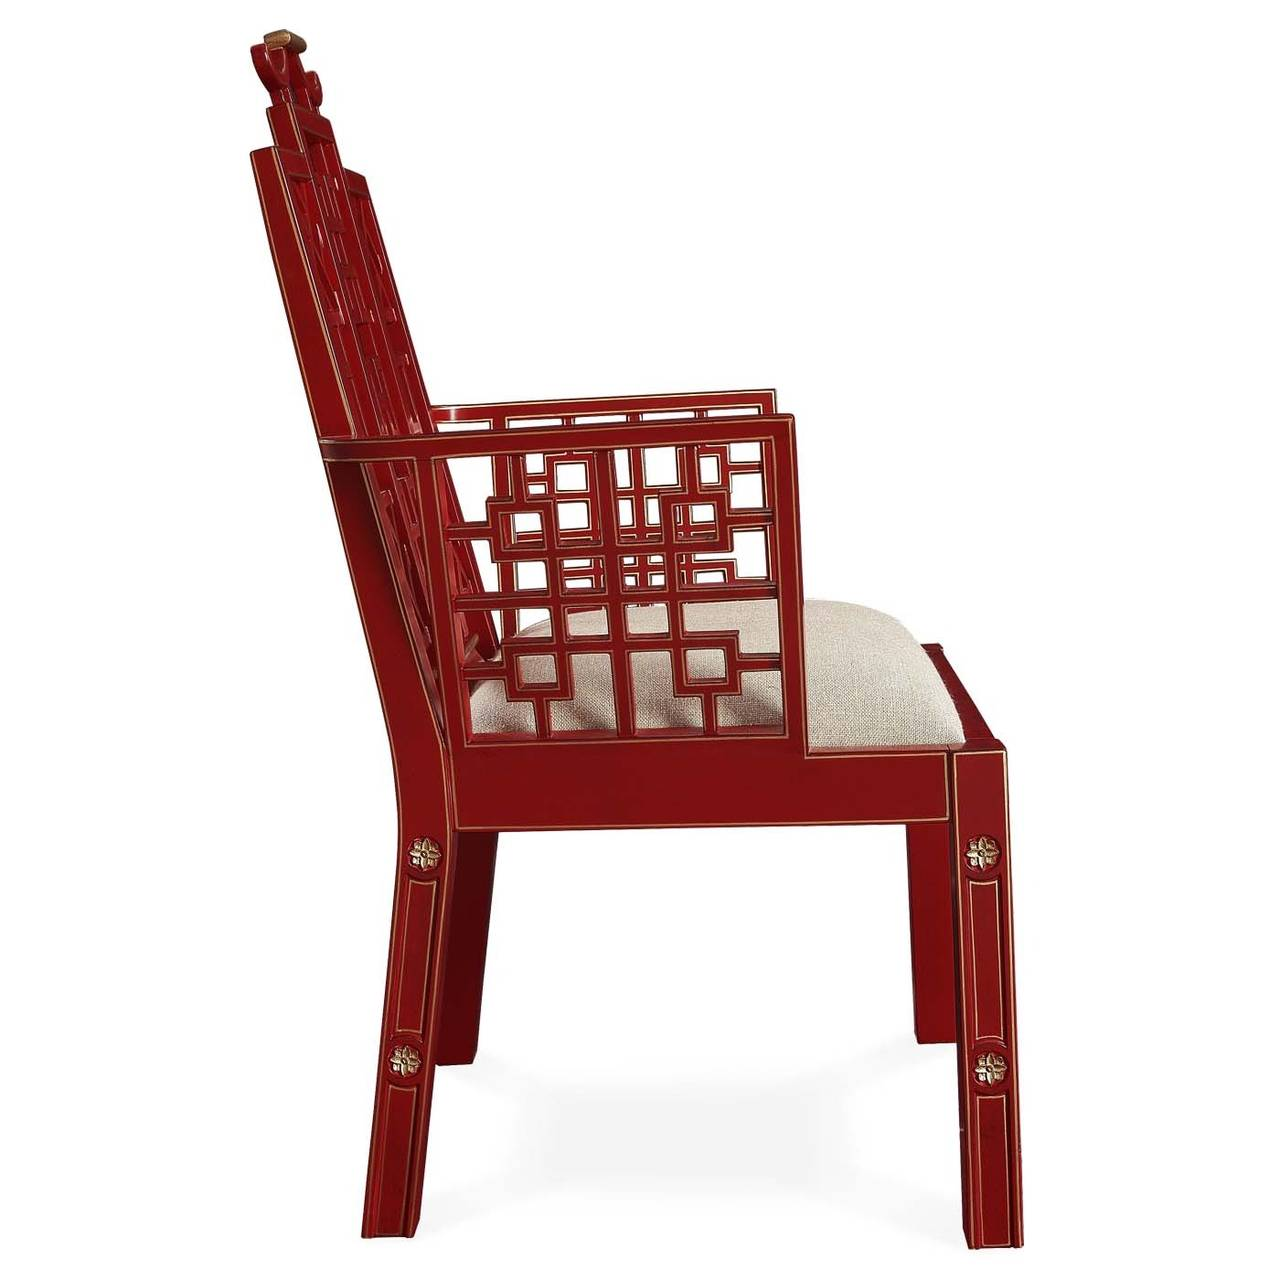 Ming chinoiserie red lacquer dining chair for sale at 1stdibs for Red dining chairs for sale